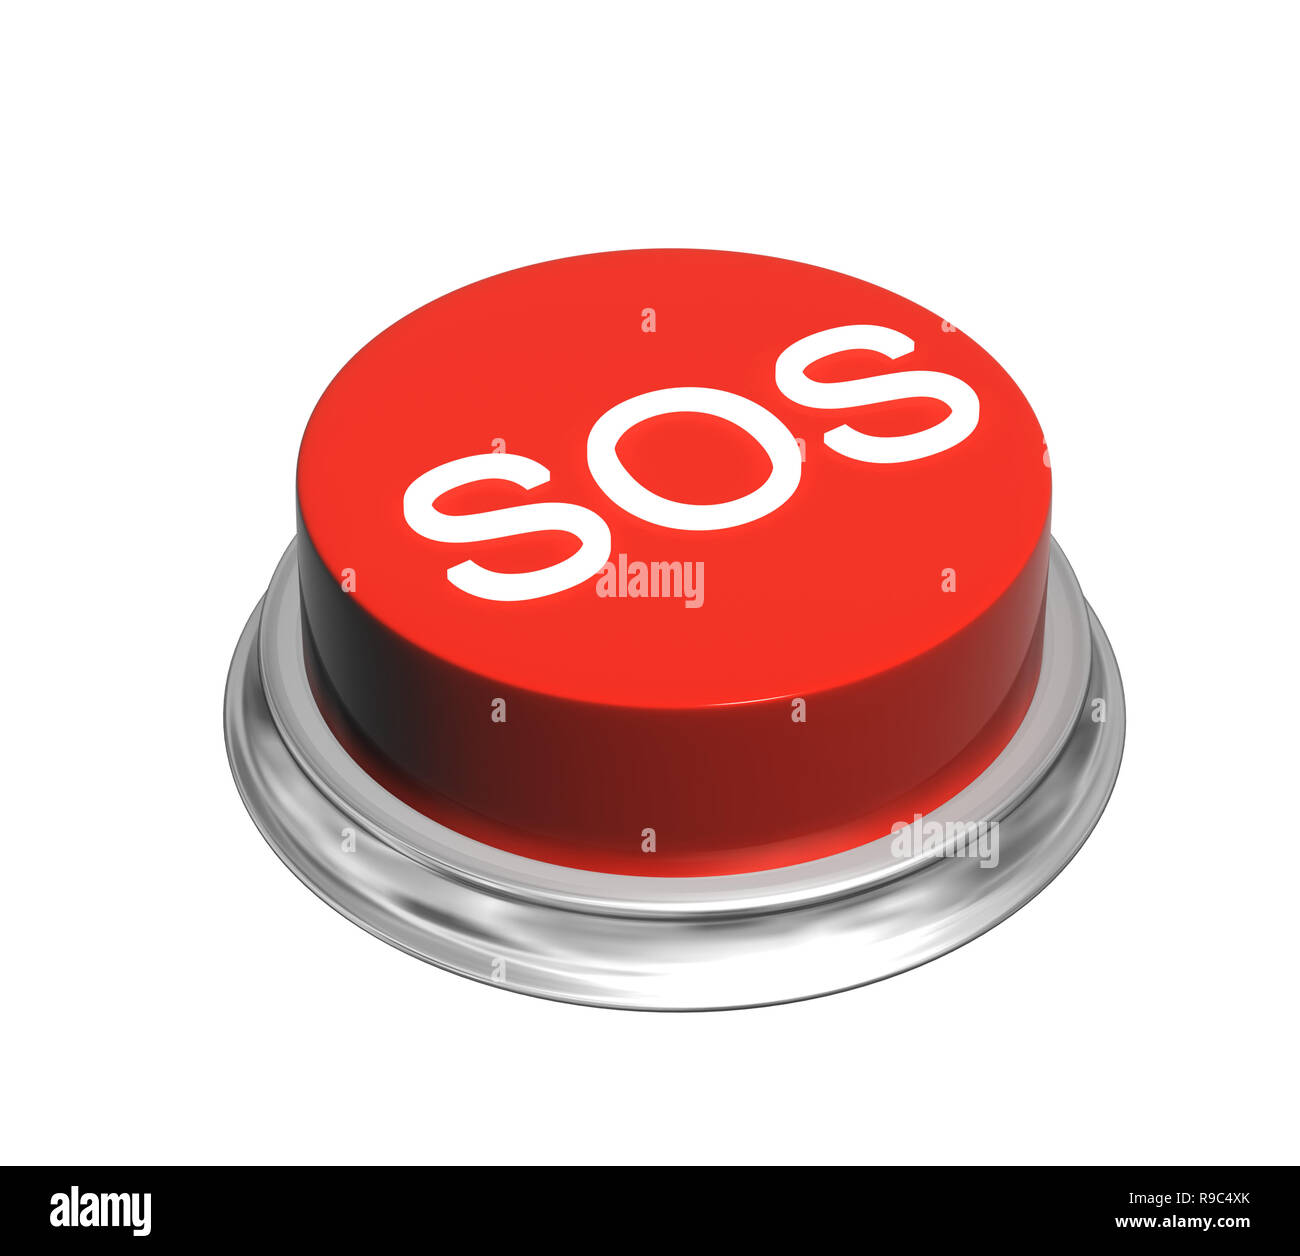 Button of red color with inscripation SOS. Object isolated on white background. 3d render Stock Photo